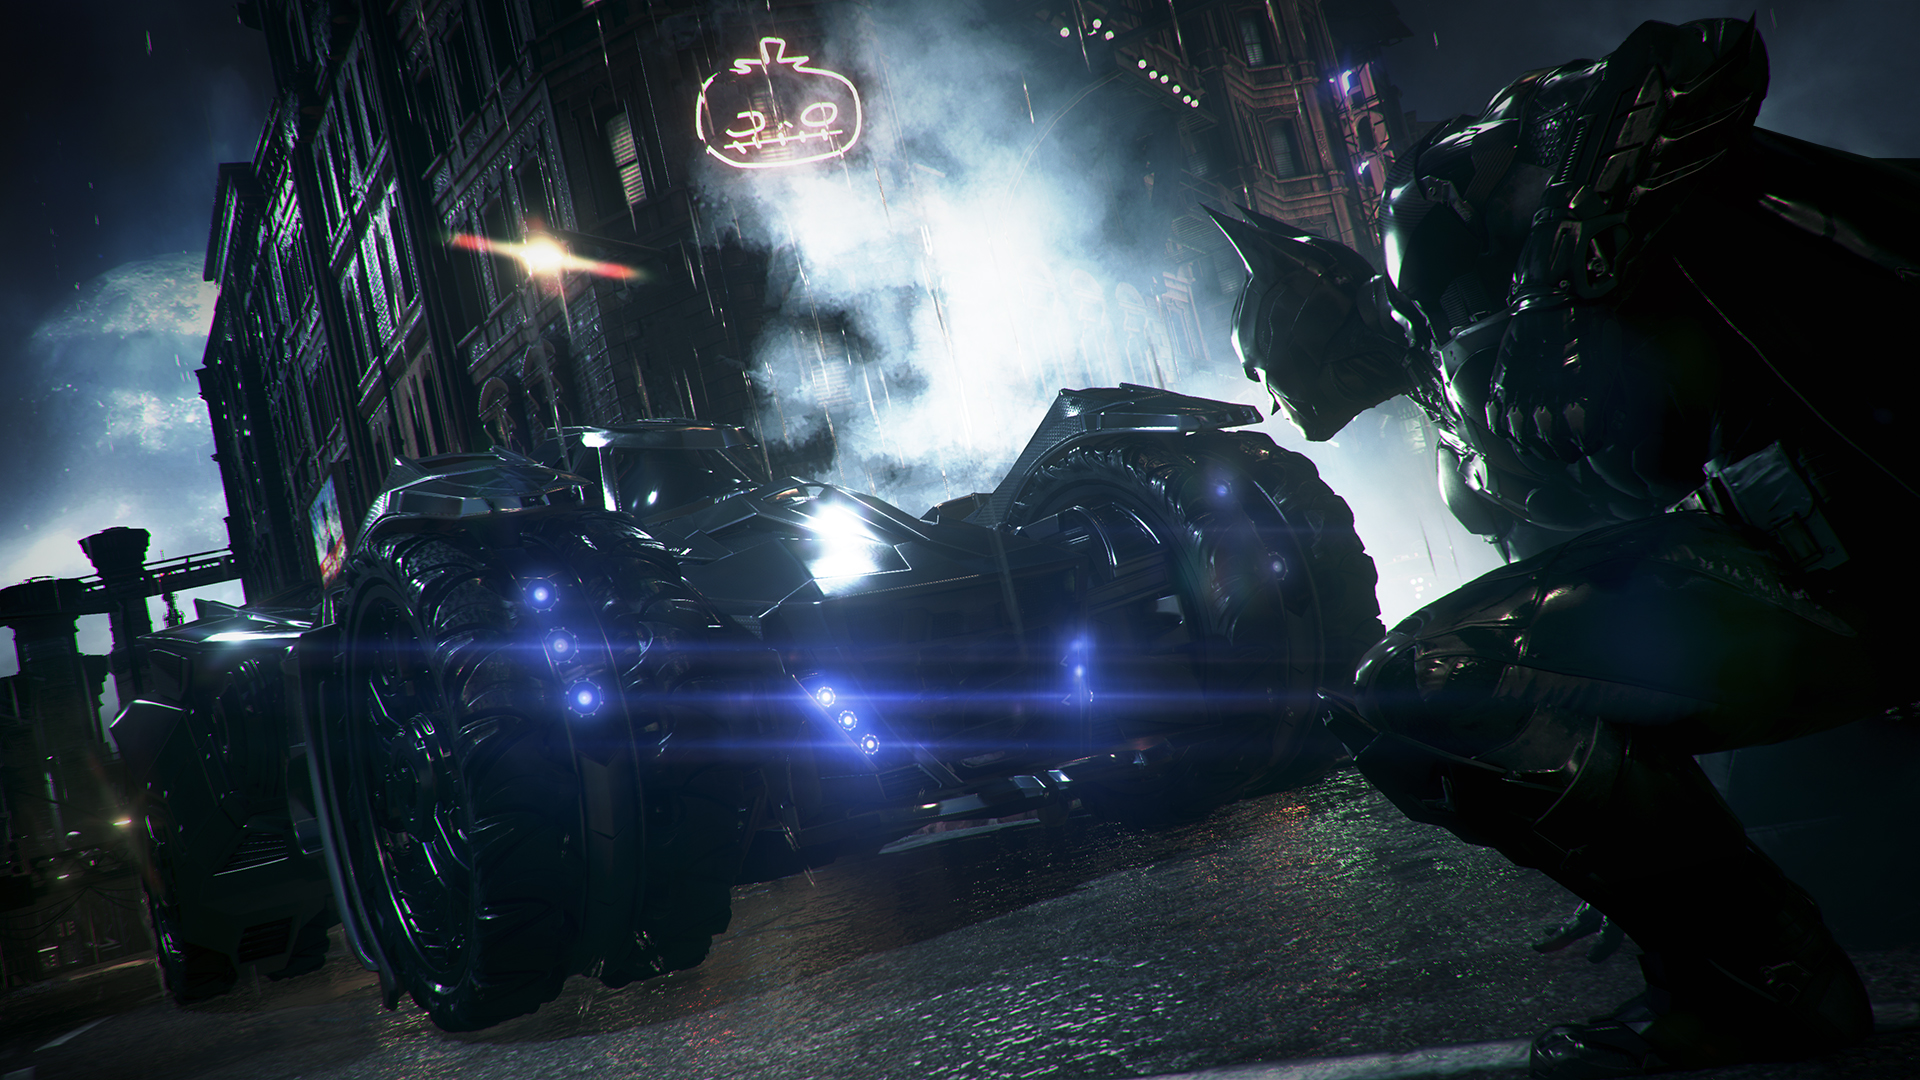 Video: Batman: Arkham Knight (gameplay trailer)